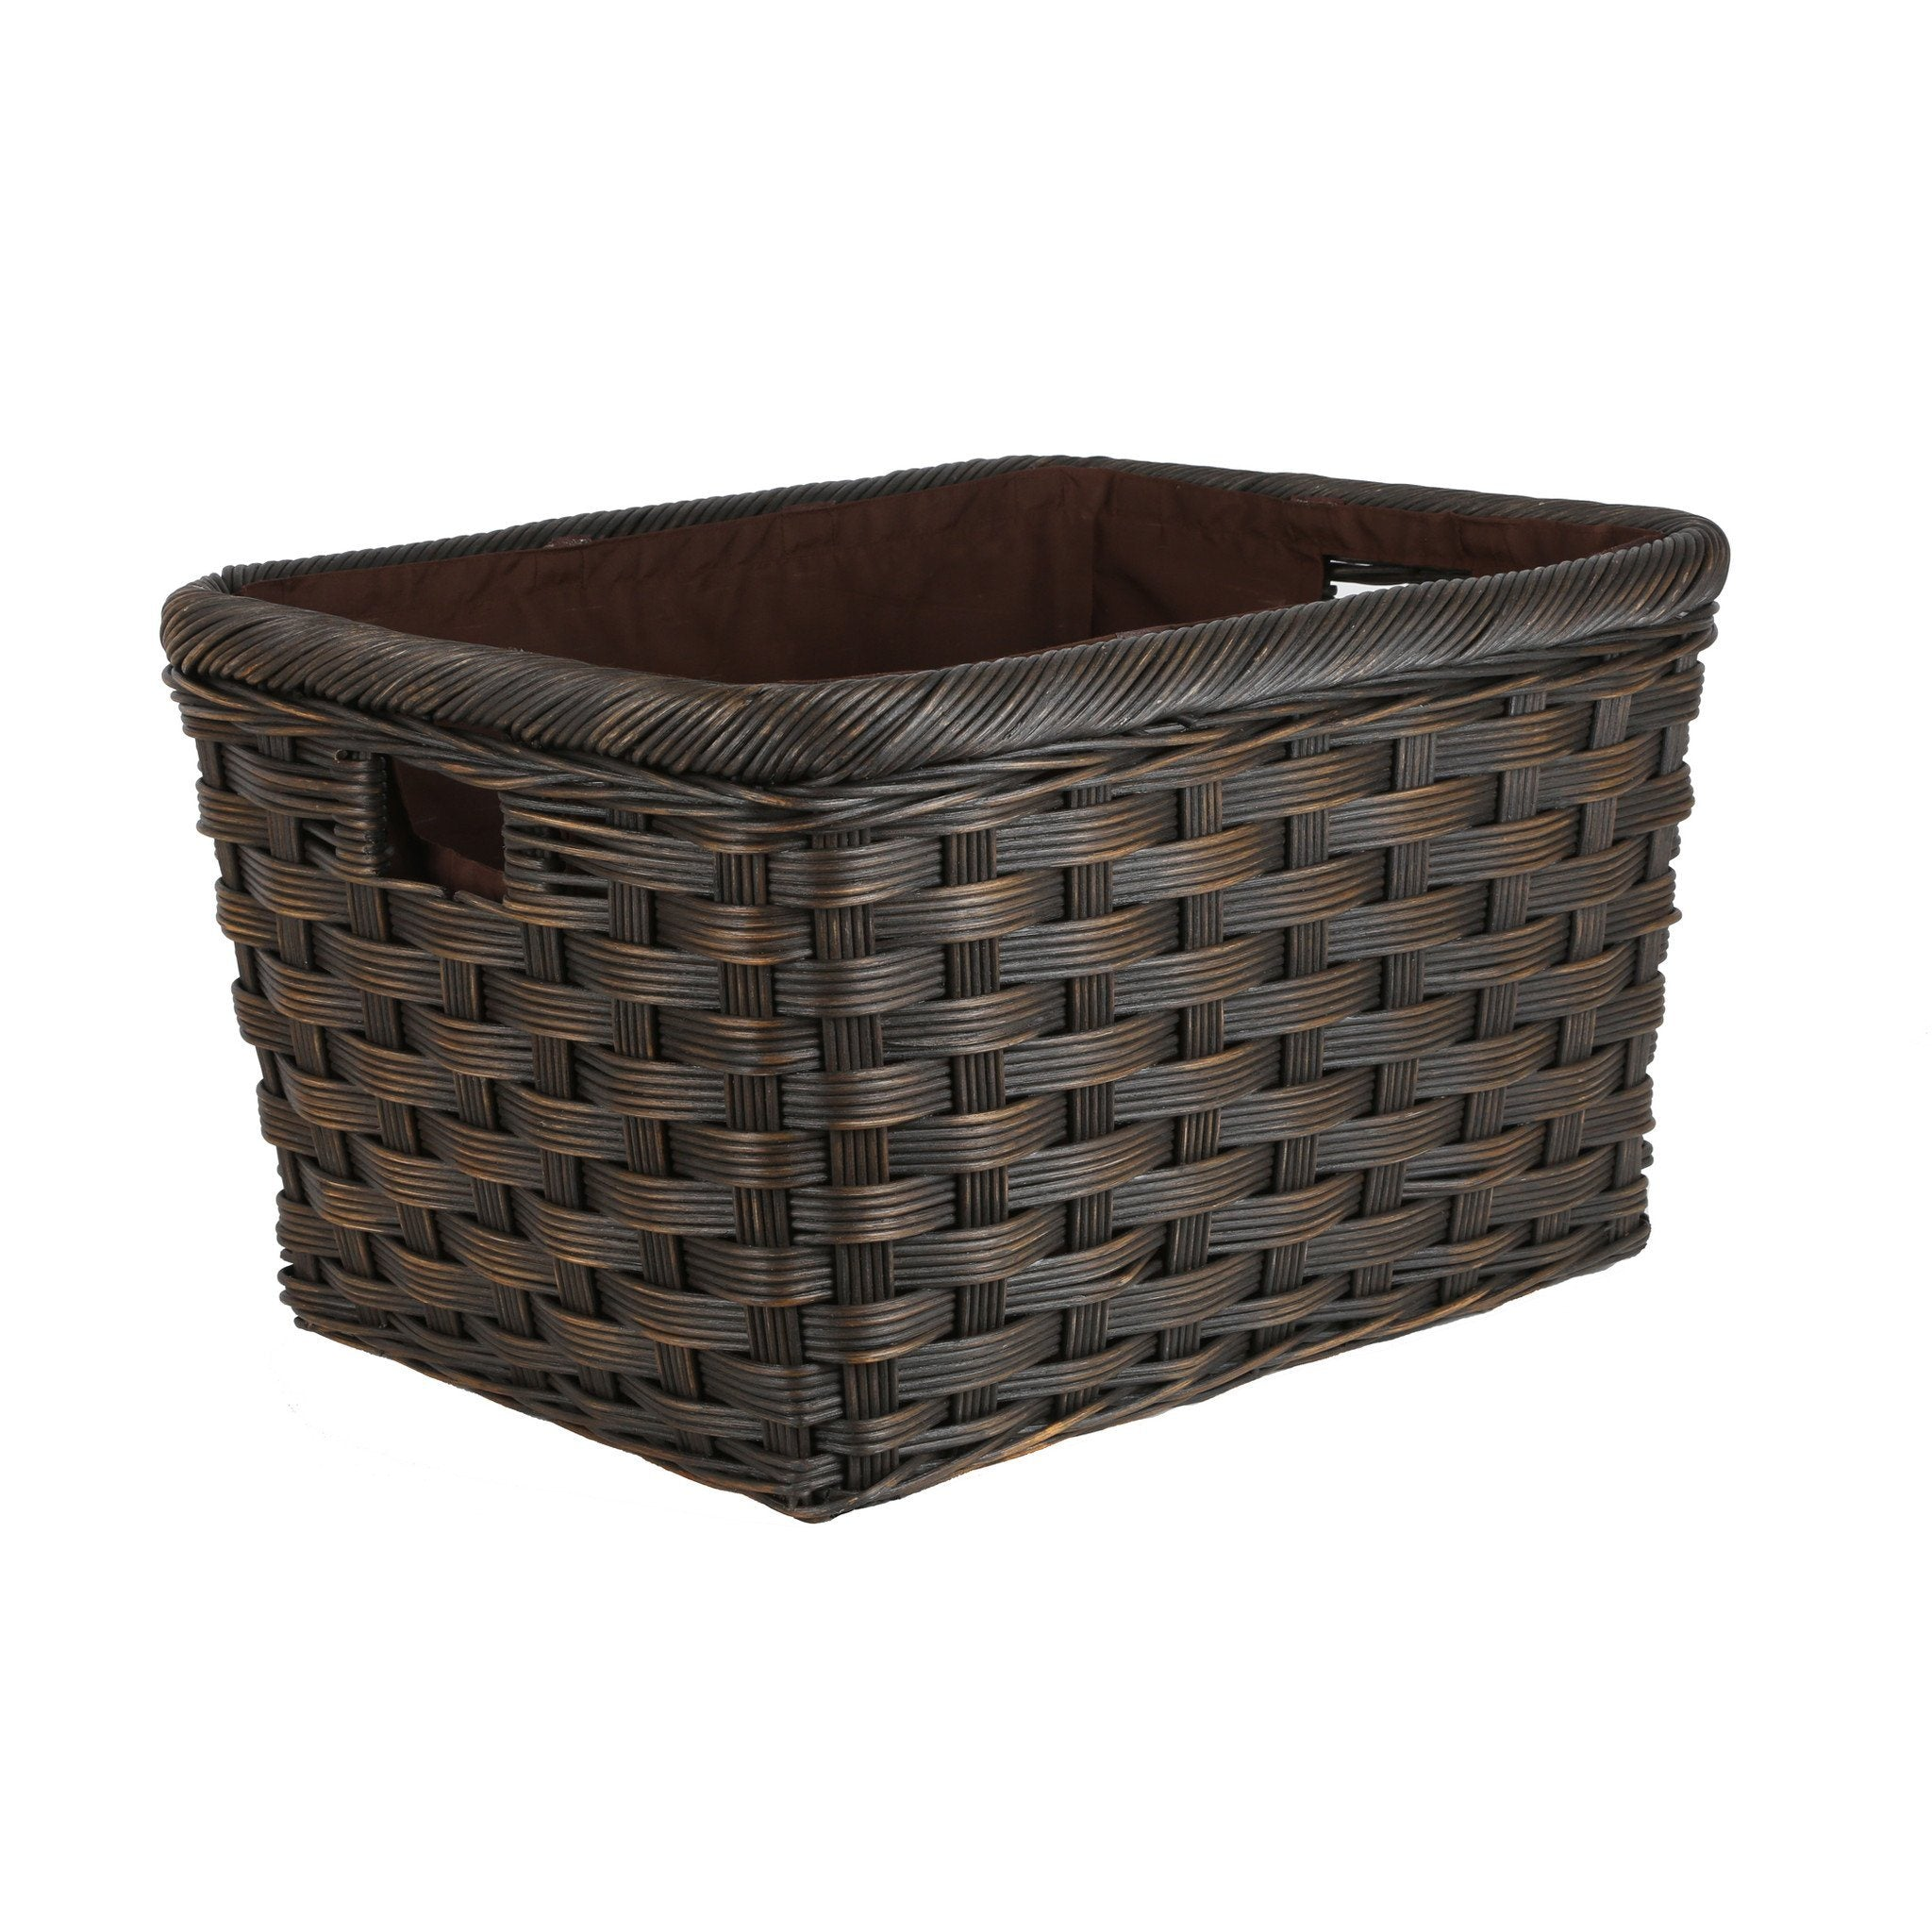 Attirant ... Jumbo Wicker Storage Basket In Antique Walnut Brown Size L From The  Basket Lady ...